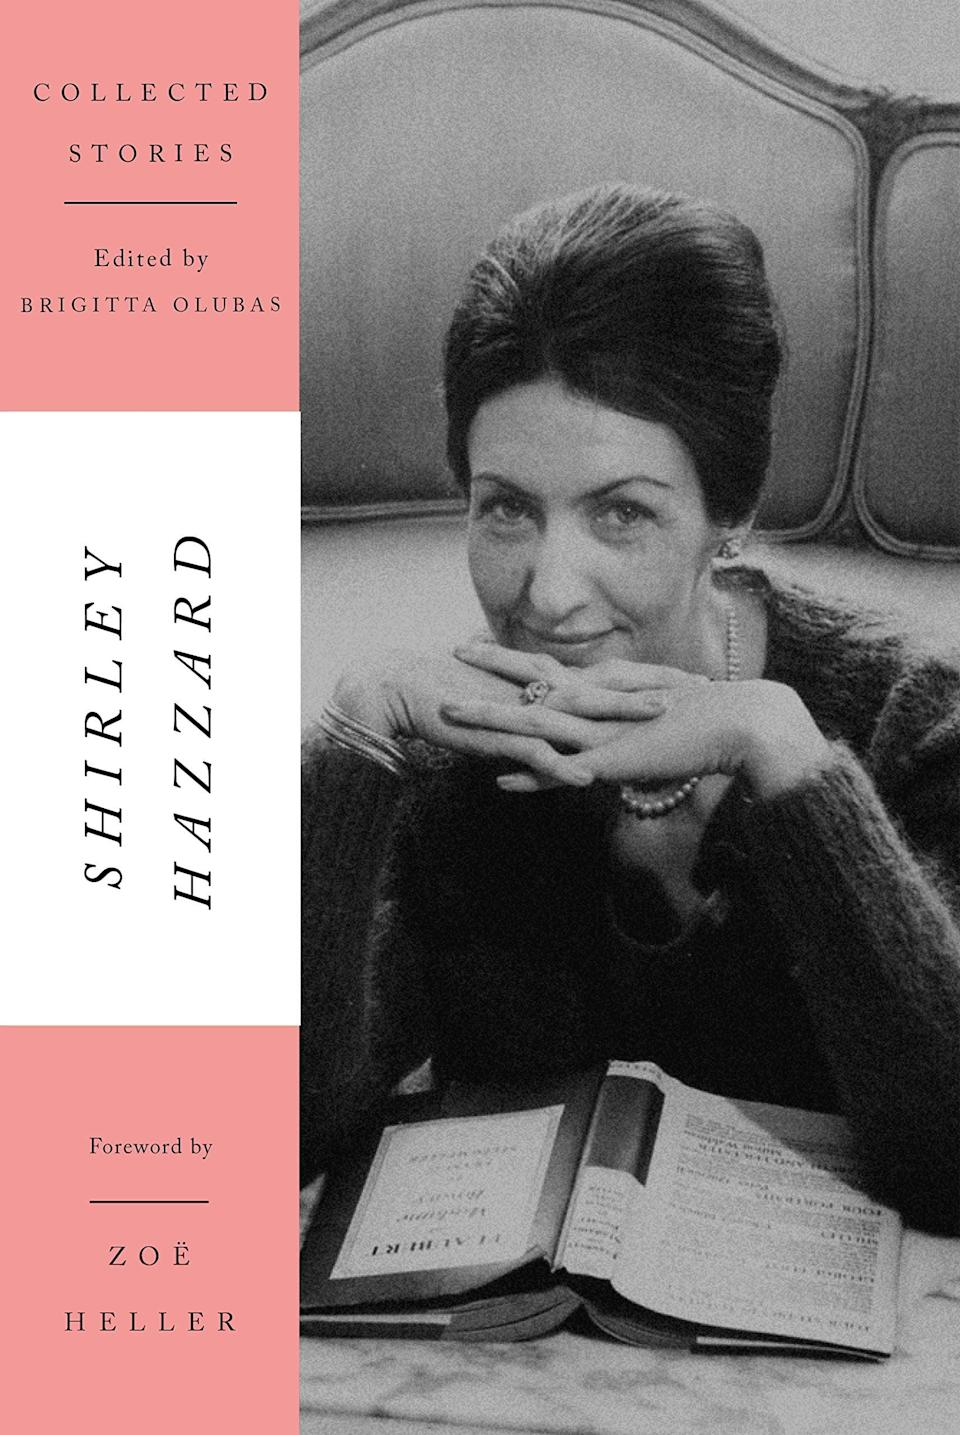 <p><span><strong>Collected Stories</strong></span> by Shirley Hazzard gathers 28 of the acclaimed author's short stories together for the first time. This expansive collection combines her previous two volumes of short stories, <strong>Cliffs of Fall</strong> and <strong>People in Glass Houses</strong>, alongside two previously unpublished stories and other uncollected works in one tome that's perfect for new and seasoned fans of Hazzard alike. </p> <p><em>Out Nov. 3</em></p>